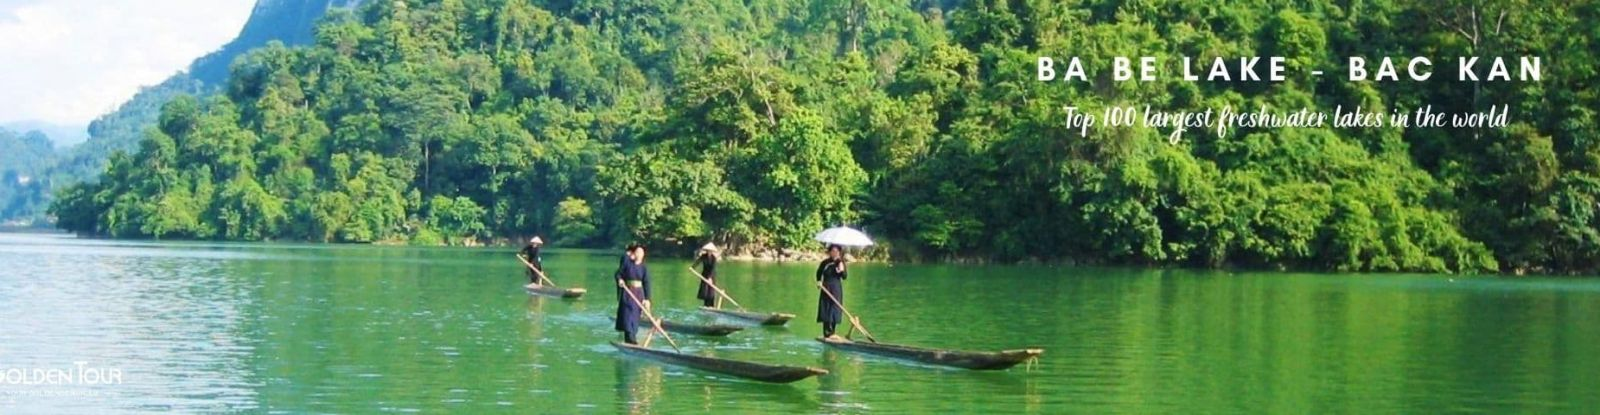 Destinations in Bac Kan - Ba Be Lake